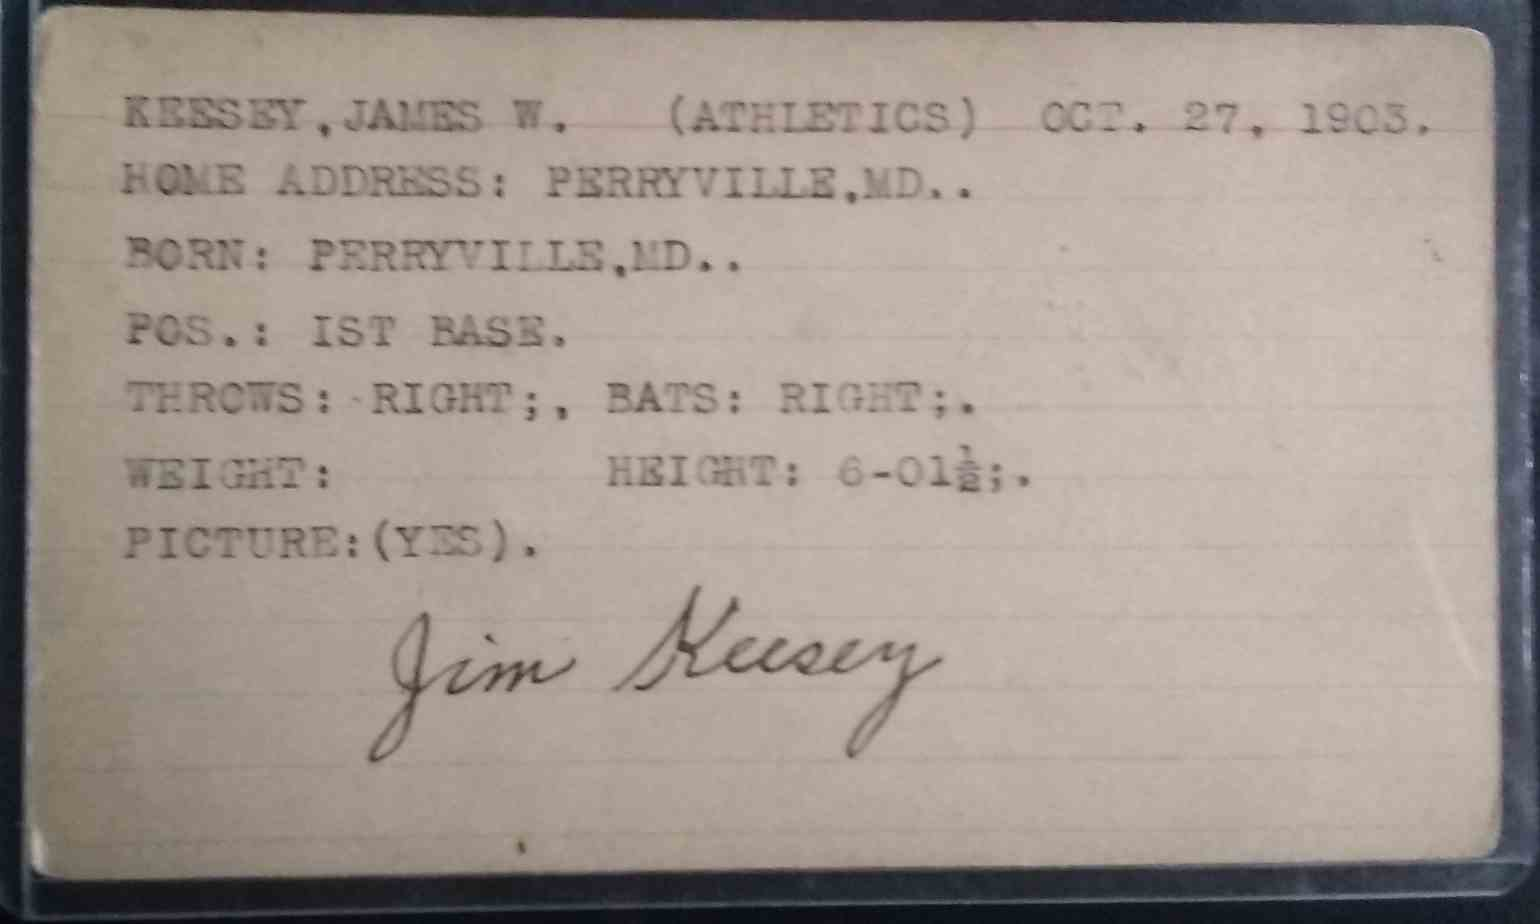 1925 3X5 Jim Keesey card back image